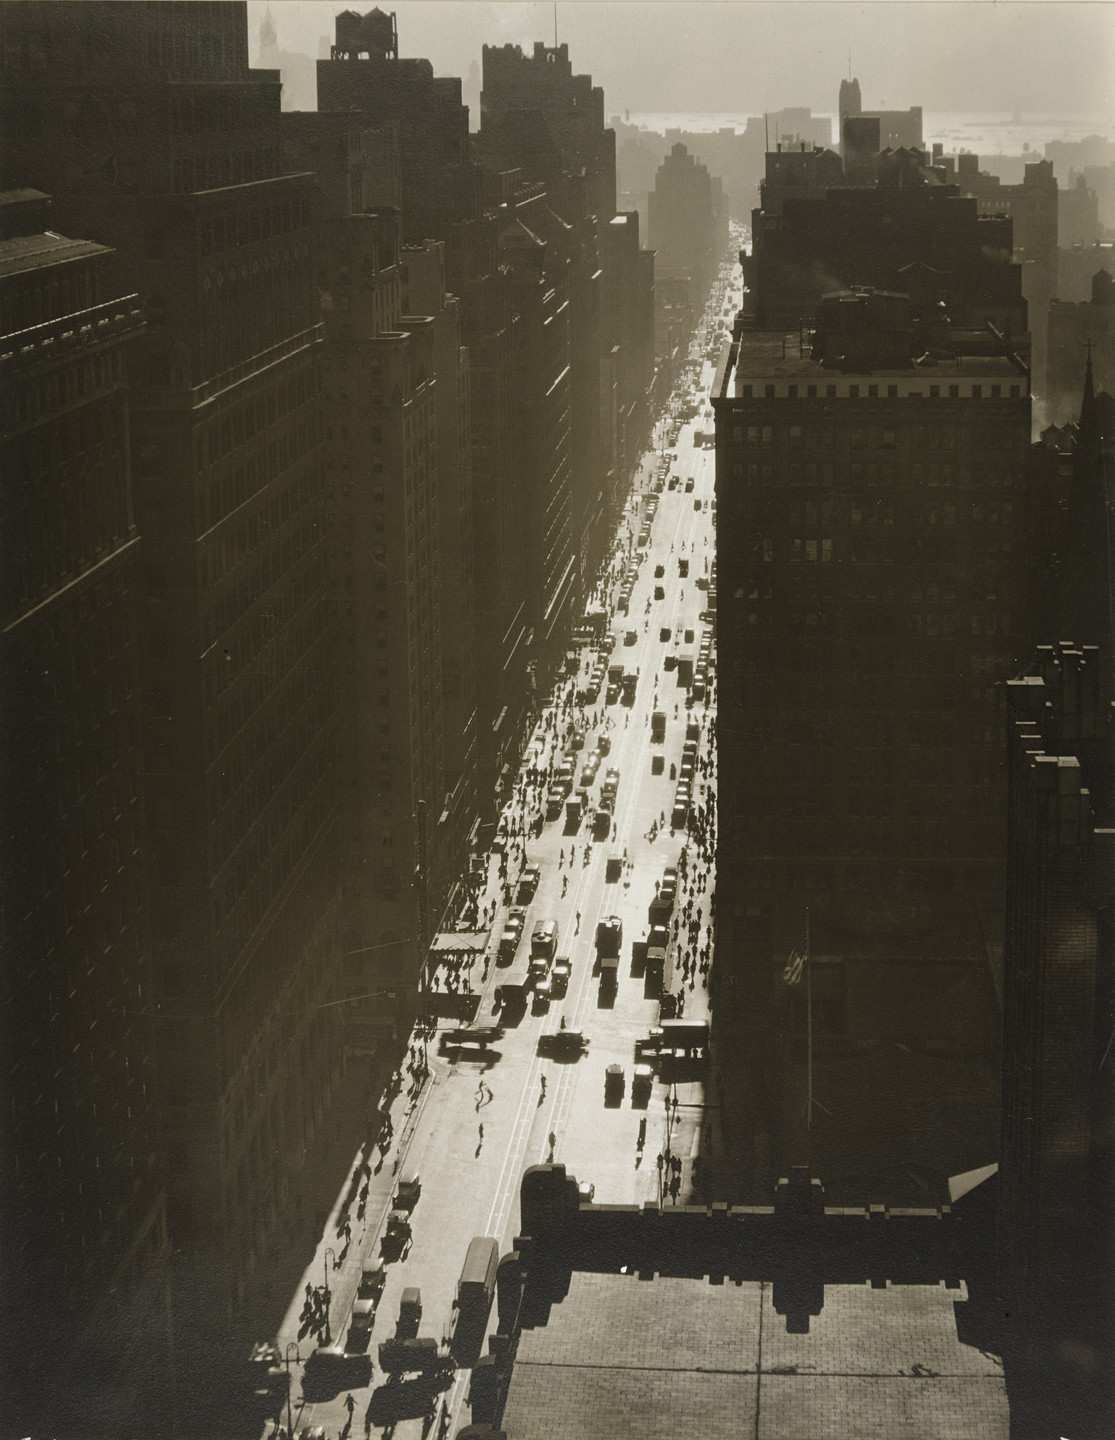 Berenice Abbott. Seventh Avenue Looking South from 35th Street, Manhattan. December 5, 1935